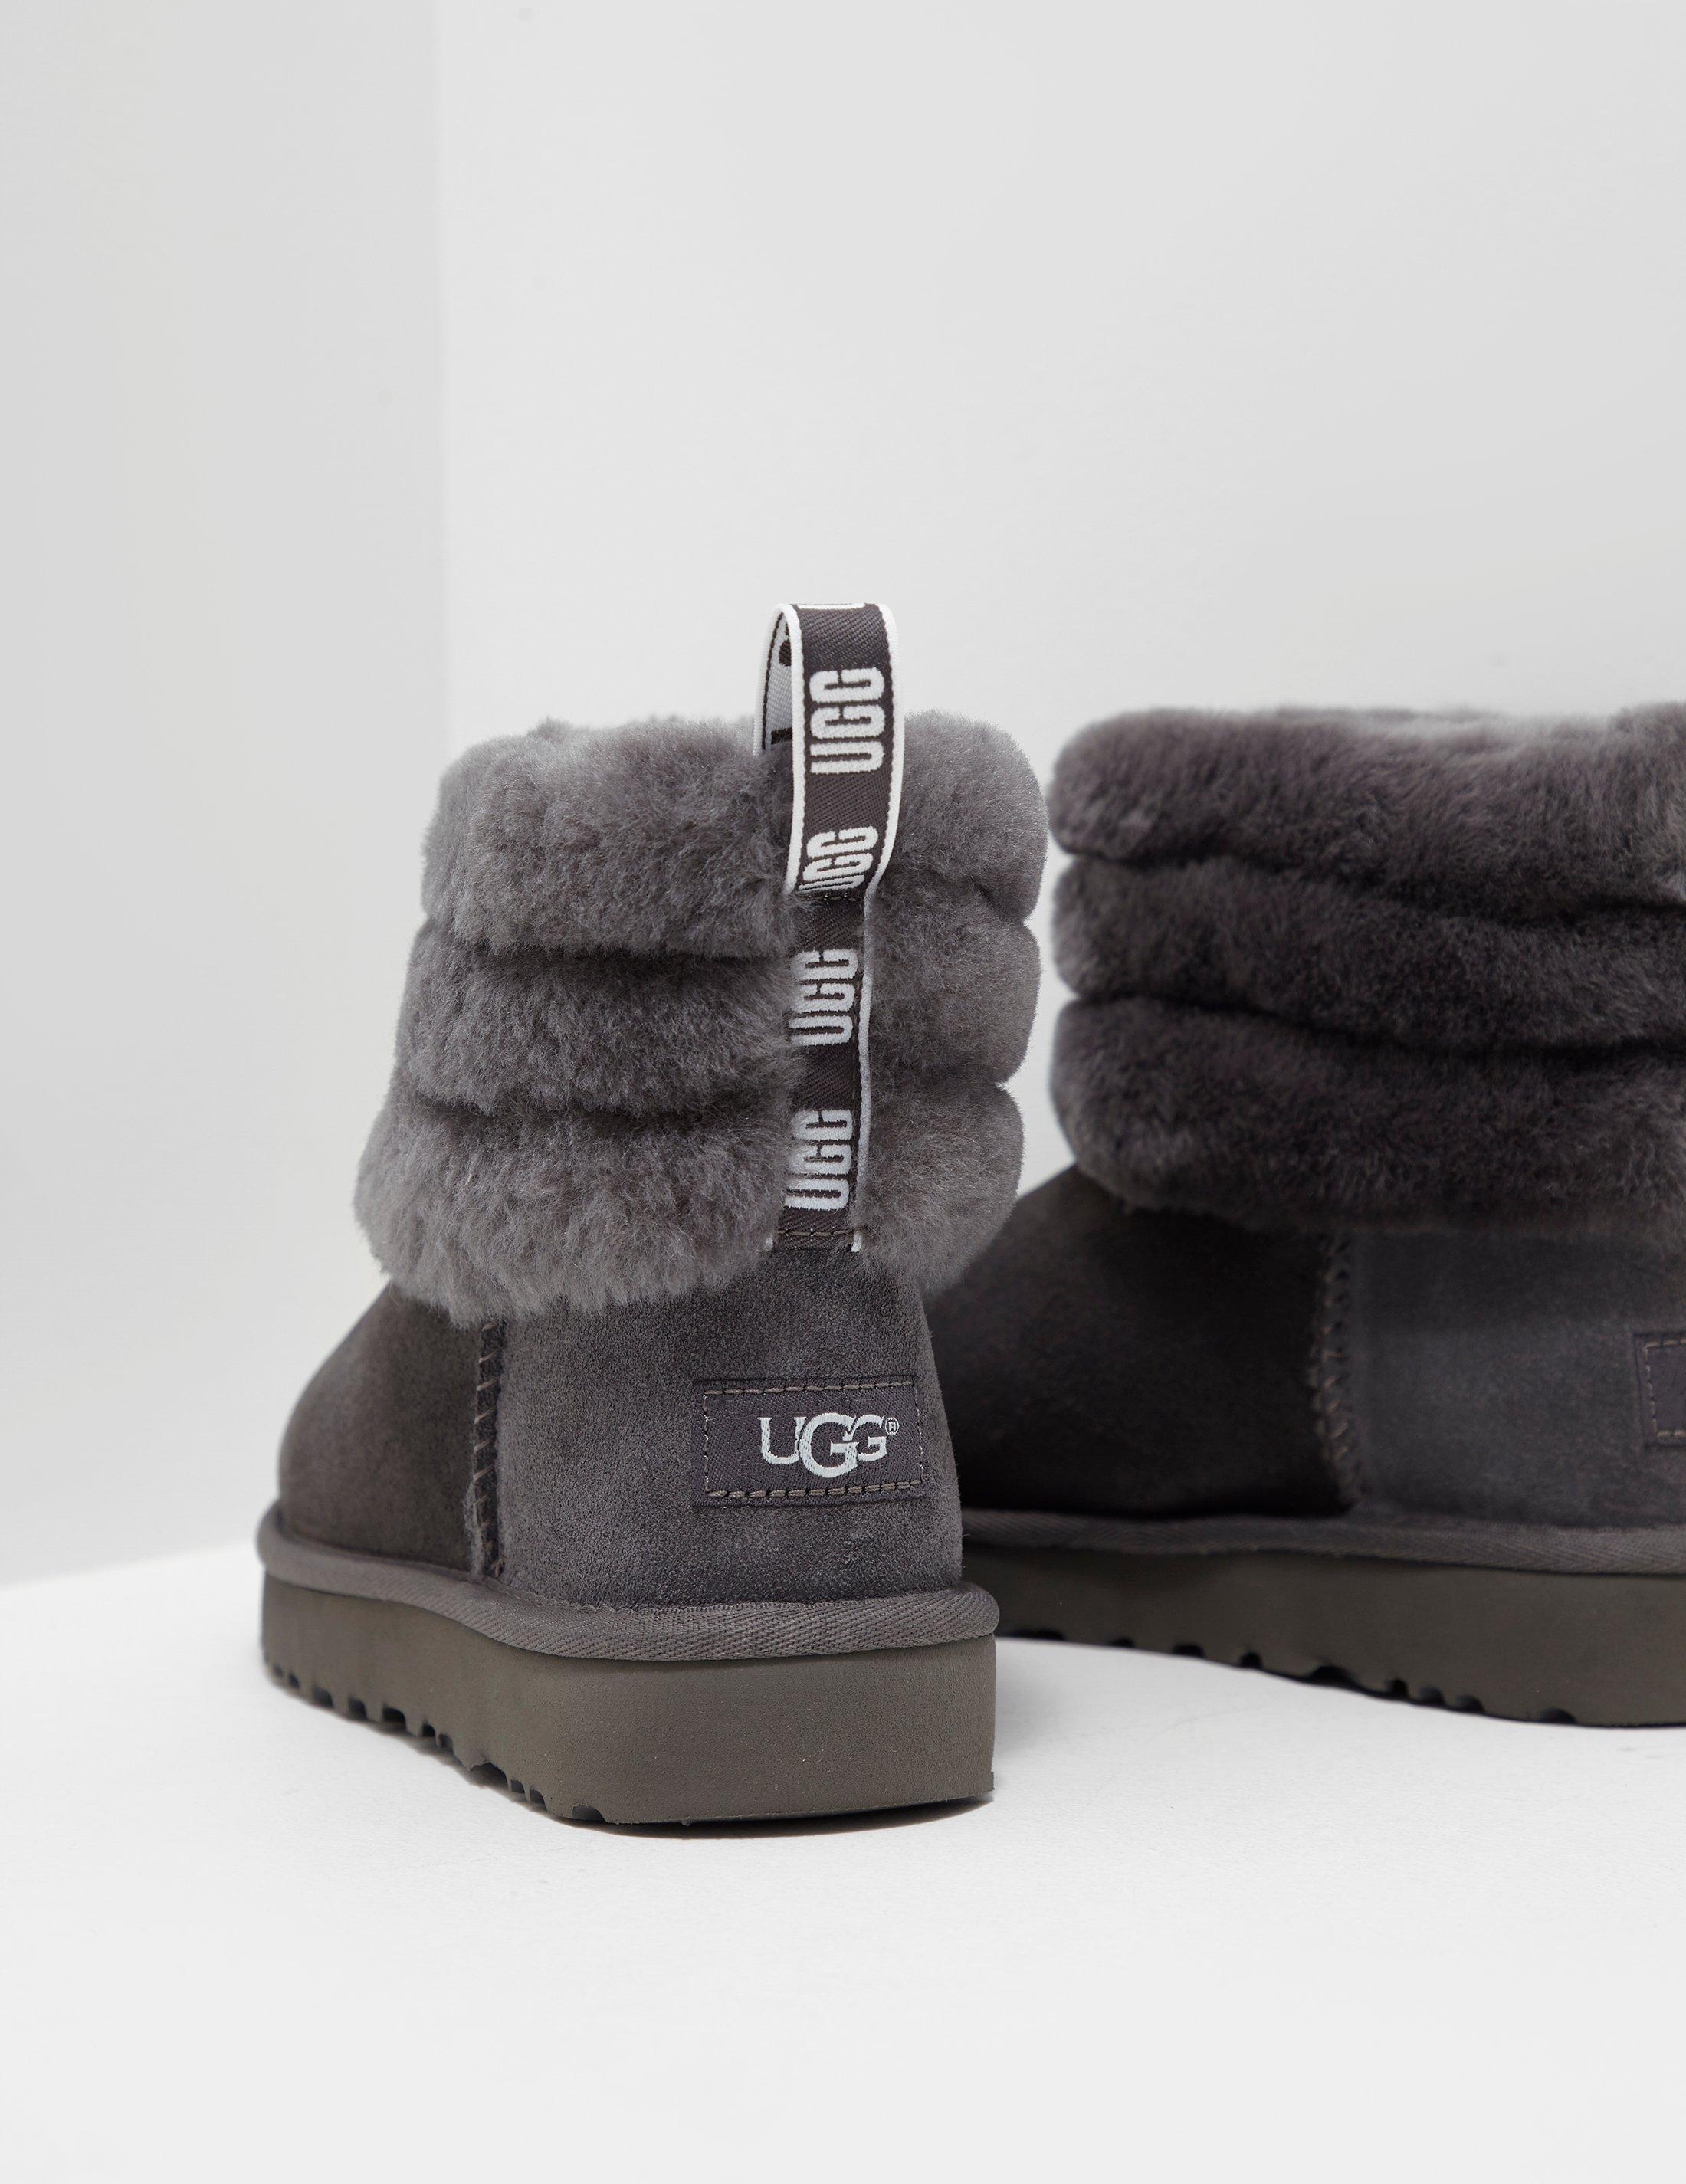 45f4cb2a898 Ugg Gray Womens Fluff Mini Quilted Logo Boots Women's Grey